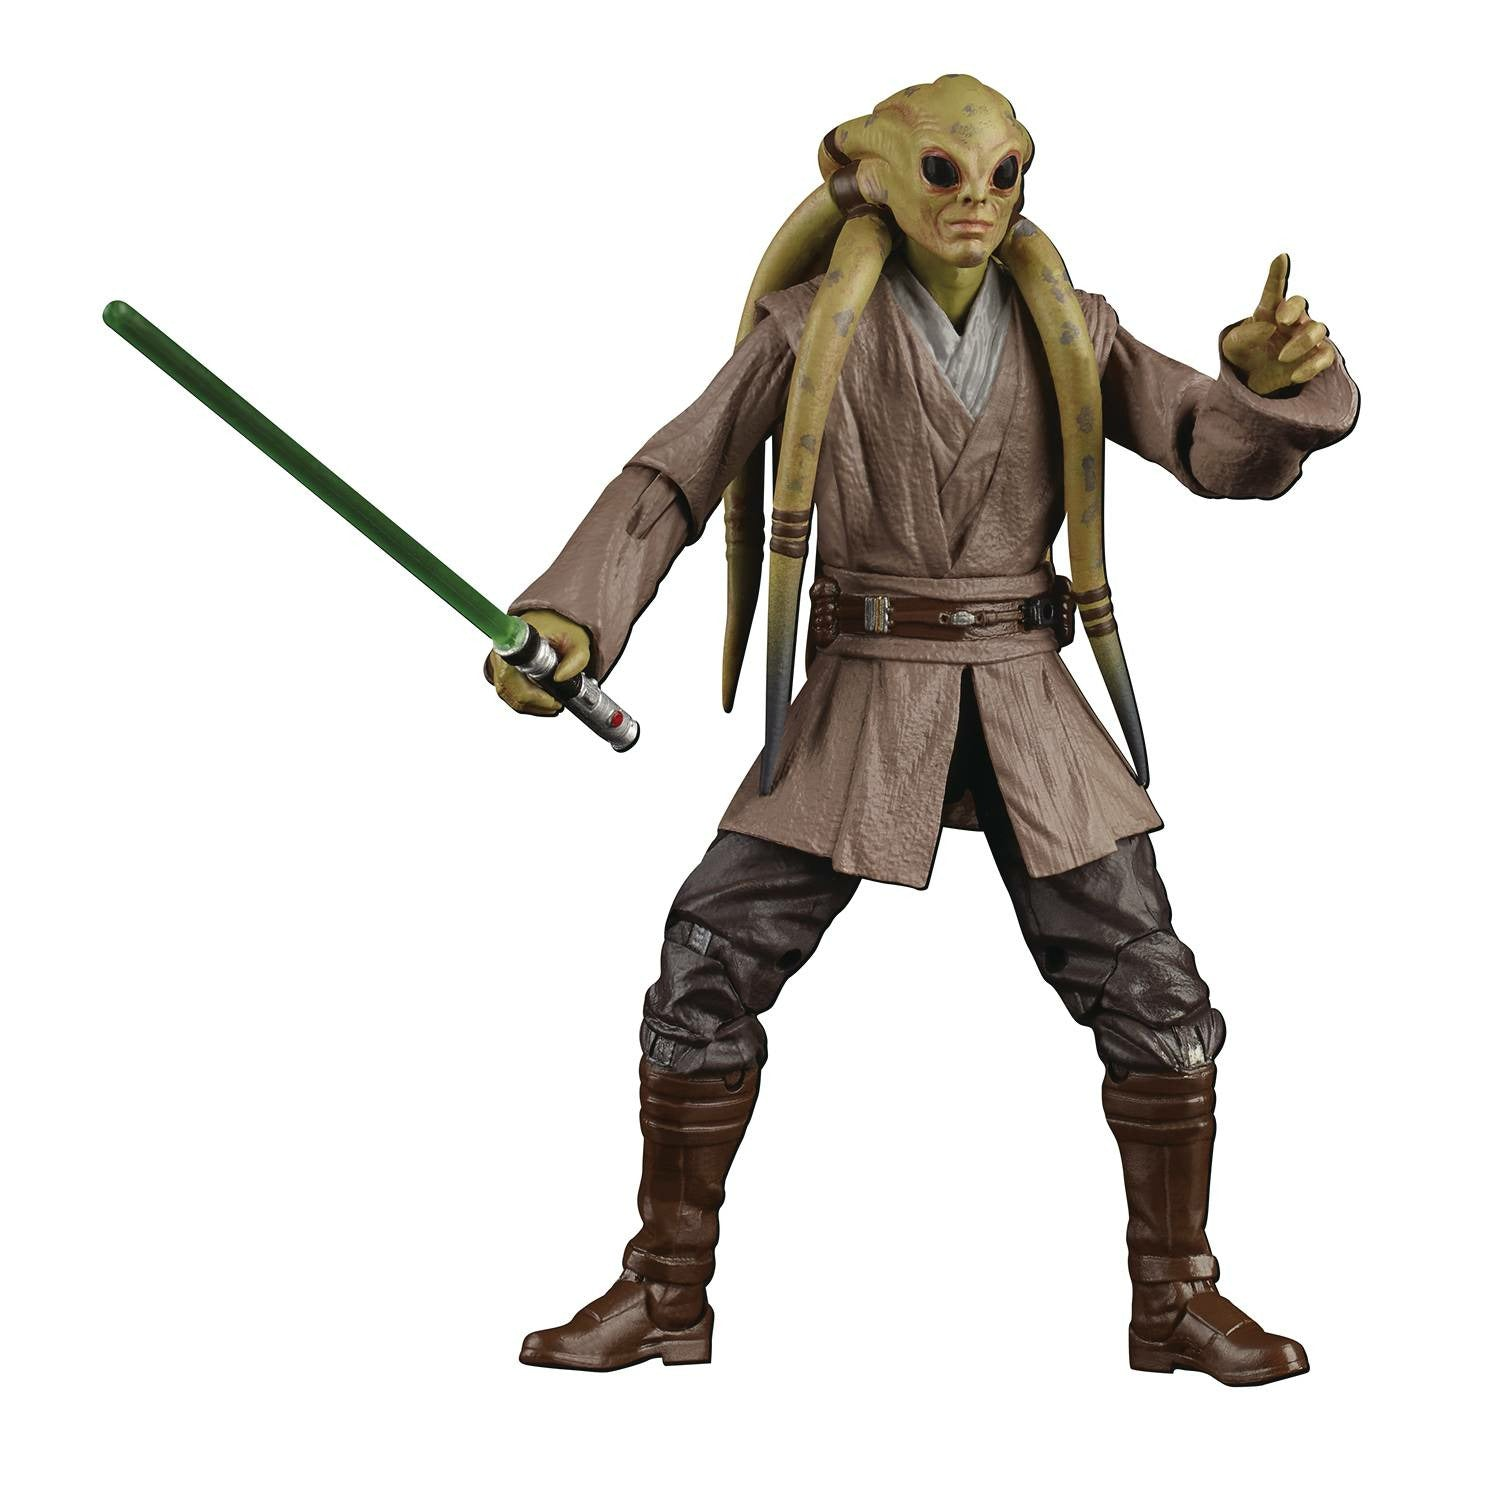 Star Wars Cw Black Series Kit Fisto 6in Action Figure CS